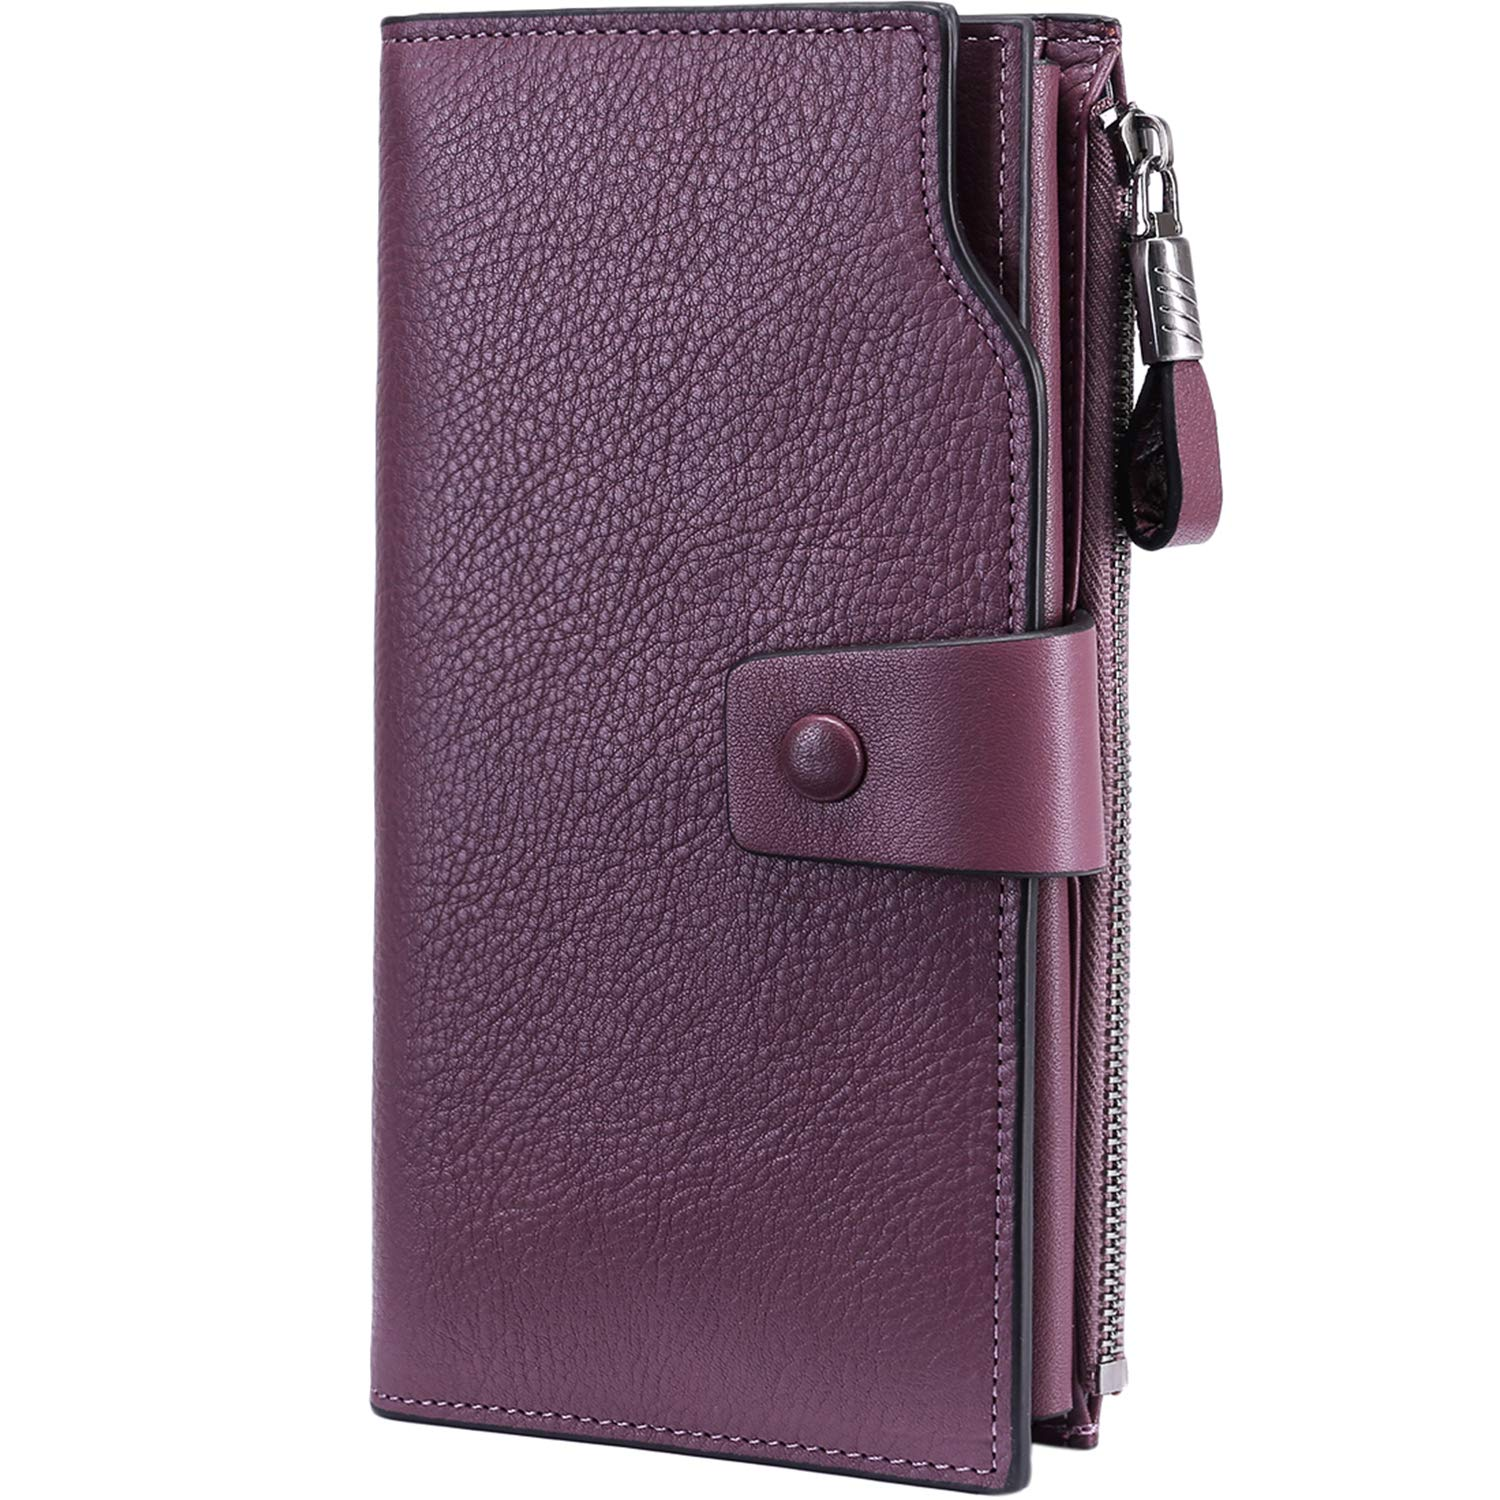 Itslife Women's RFID Blocking Large Capacity Luxury Wax Genuine Leather Cluth Wallet Card Holder Ladies Purse (Natural Purple(Lavender) RFID BLOCKING)